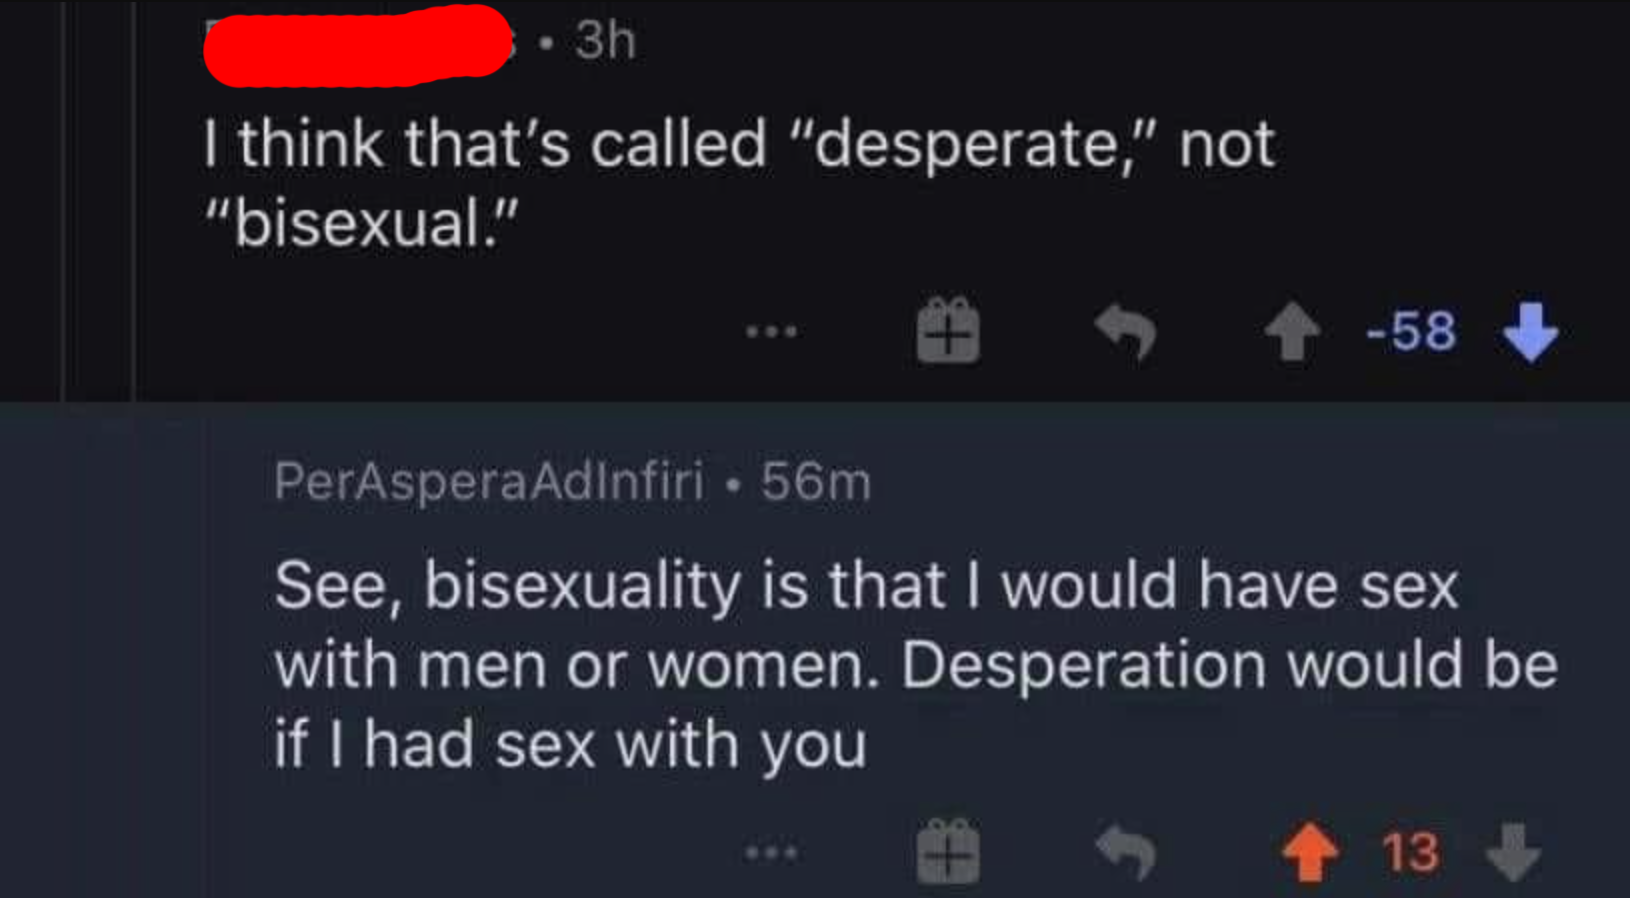 person who says i think that's called desperate not bisexual and someone respond bisexuality is that i would have sex with men and women desperation would be sex with you